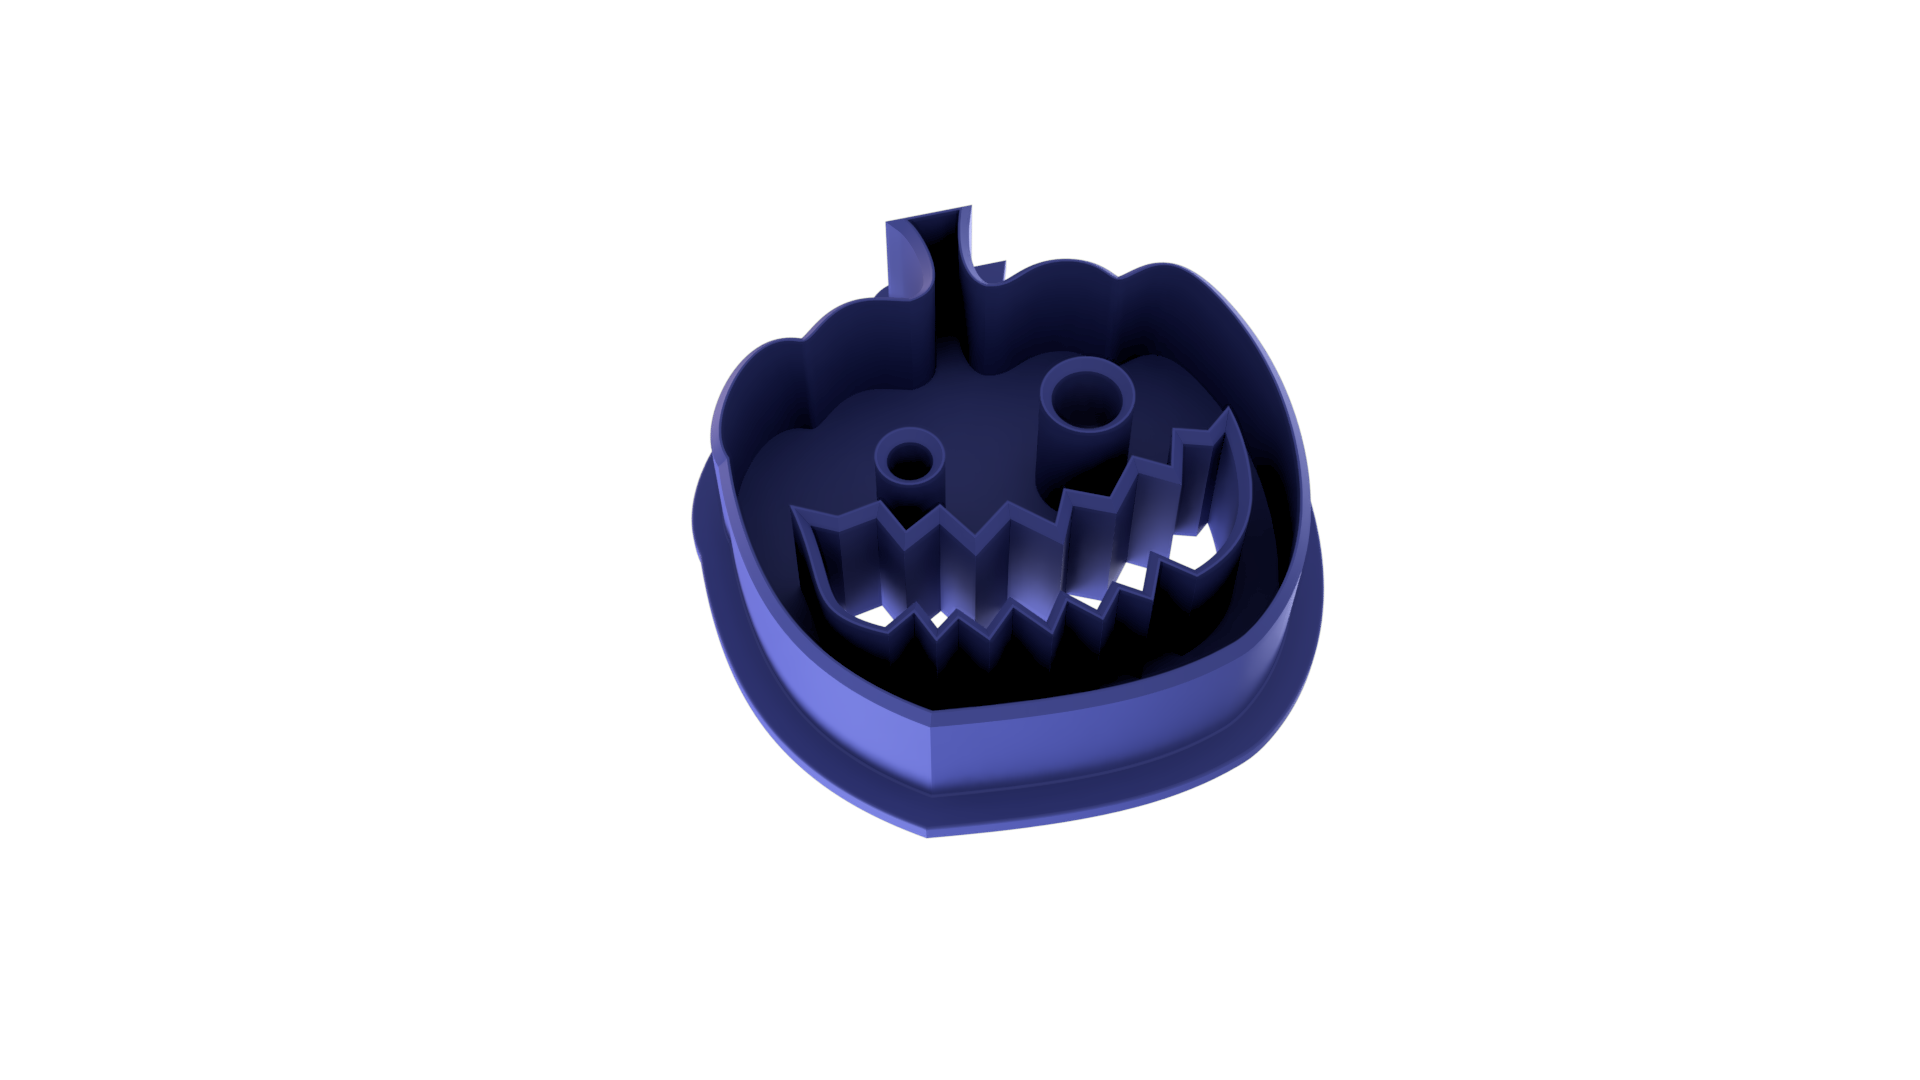 Halloween_cookie_cutter_2017-Oct-28_08-30-36PM-000_CustomizedView12279136016.png Download free STL file Halloween various Lantern Cookie Cutter • Design to 3D print, ZepTo